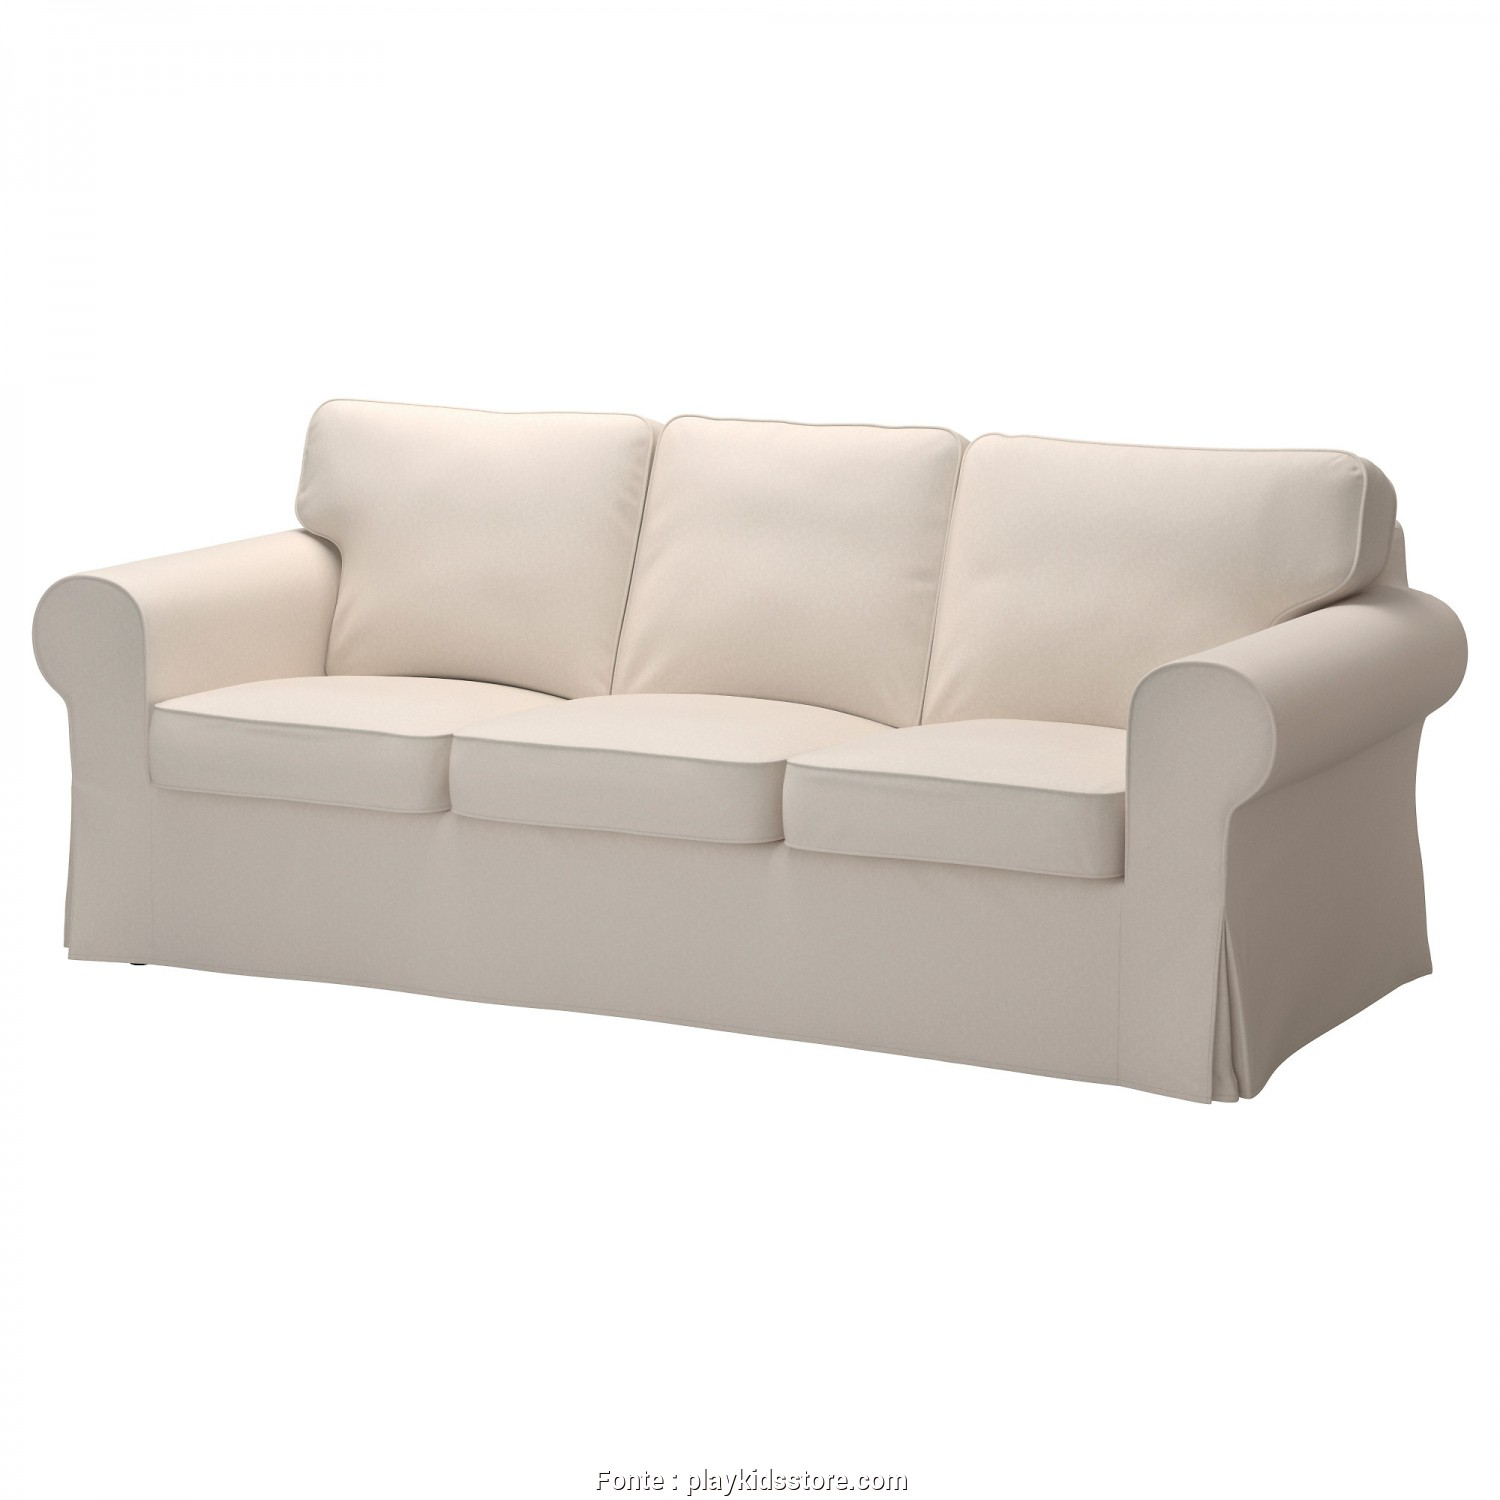 Ikea Divano Karlstad, Bello Furniture: Stunning Ikea Karlstad Sofa Cover, Your Sofa Need